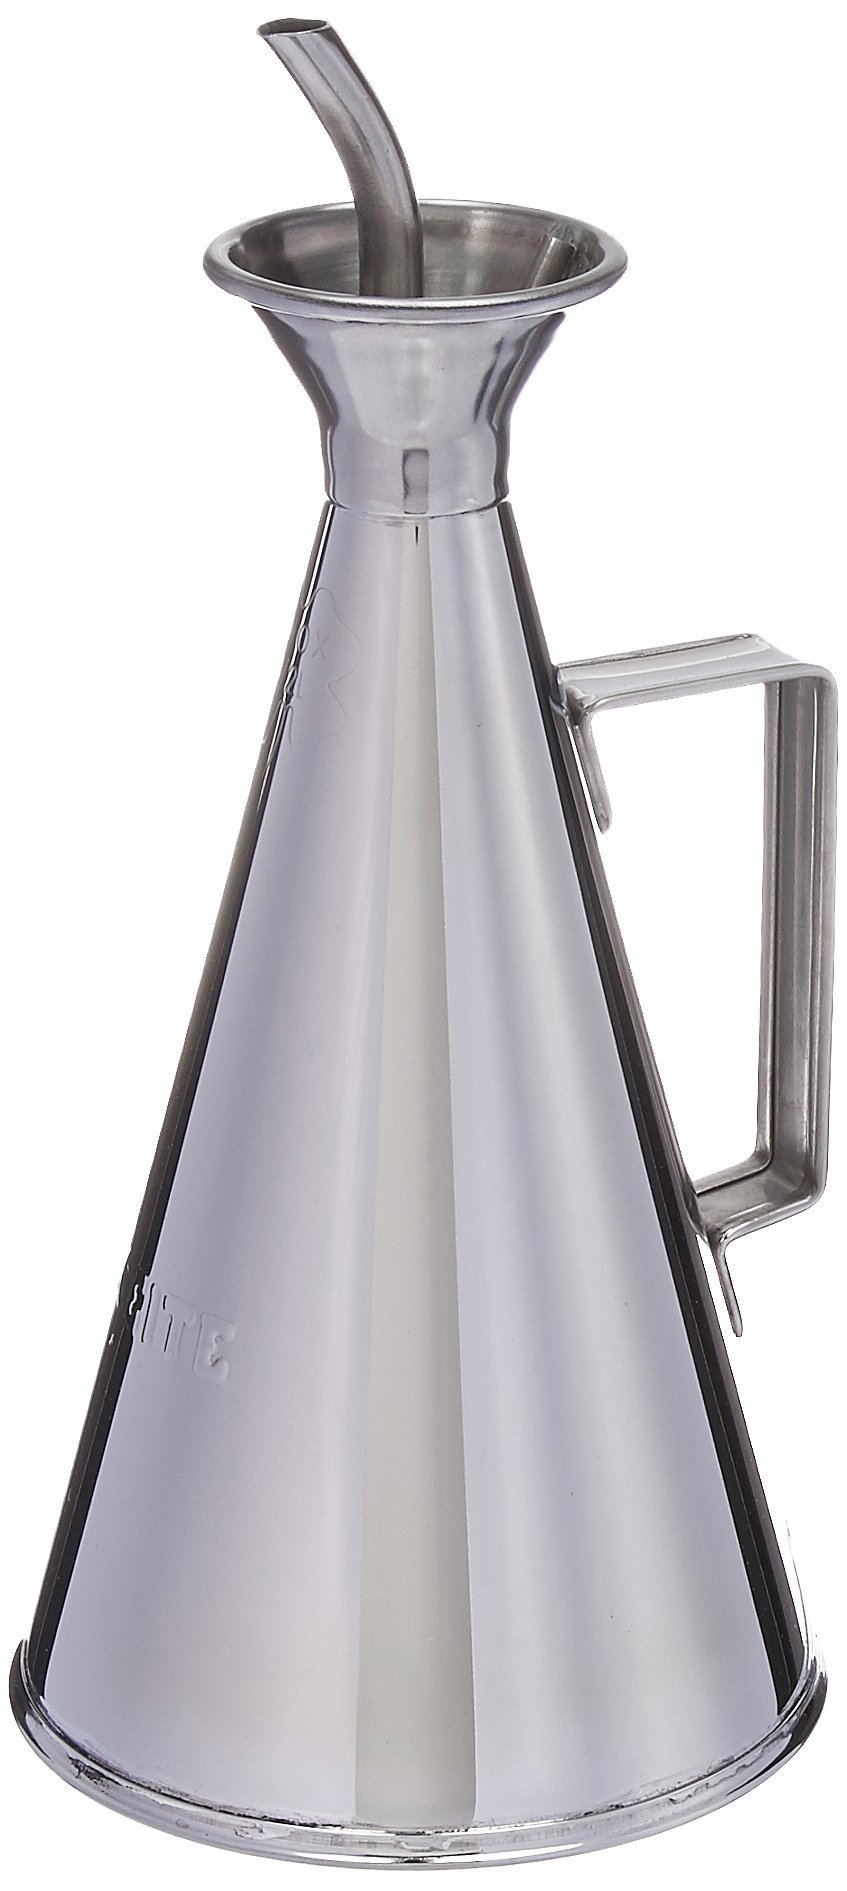 ½ Liter No Drip Olive Oil Dispenser (17 oz) by Ilsa